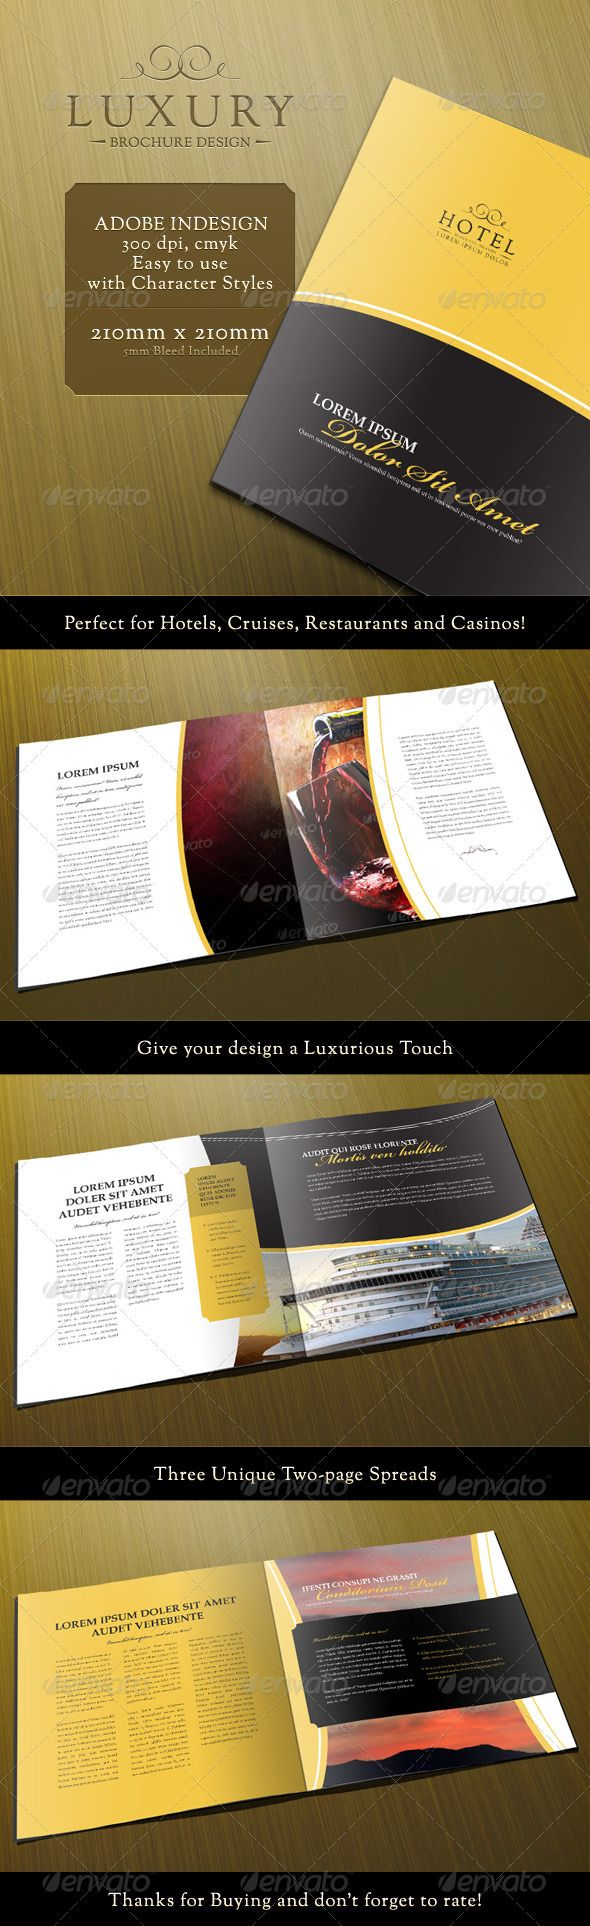 Luxury 8-Page Brochure Template is a high quality Indesign brochure template with a sleek look and feel which is perfect for hotels, cruises, casinos and other luxury uses.    It comes with a cover and back design and includes three full spread designs.     The print size is 210mm x 210mm (includes 5mm bleeds) and is CMYK print-ready.    Included in the package are a CS5 indesign file, a cs4 compatible IDML file and four Illustrator files which you can place your images and logo into.